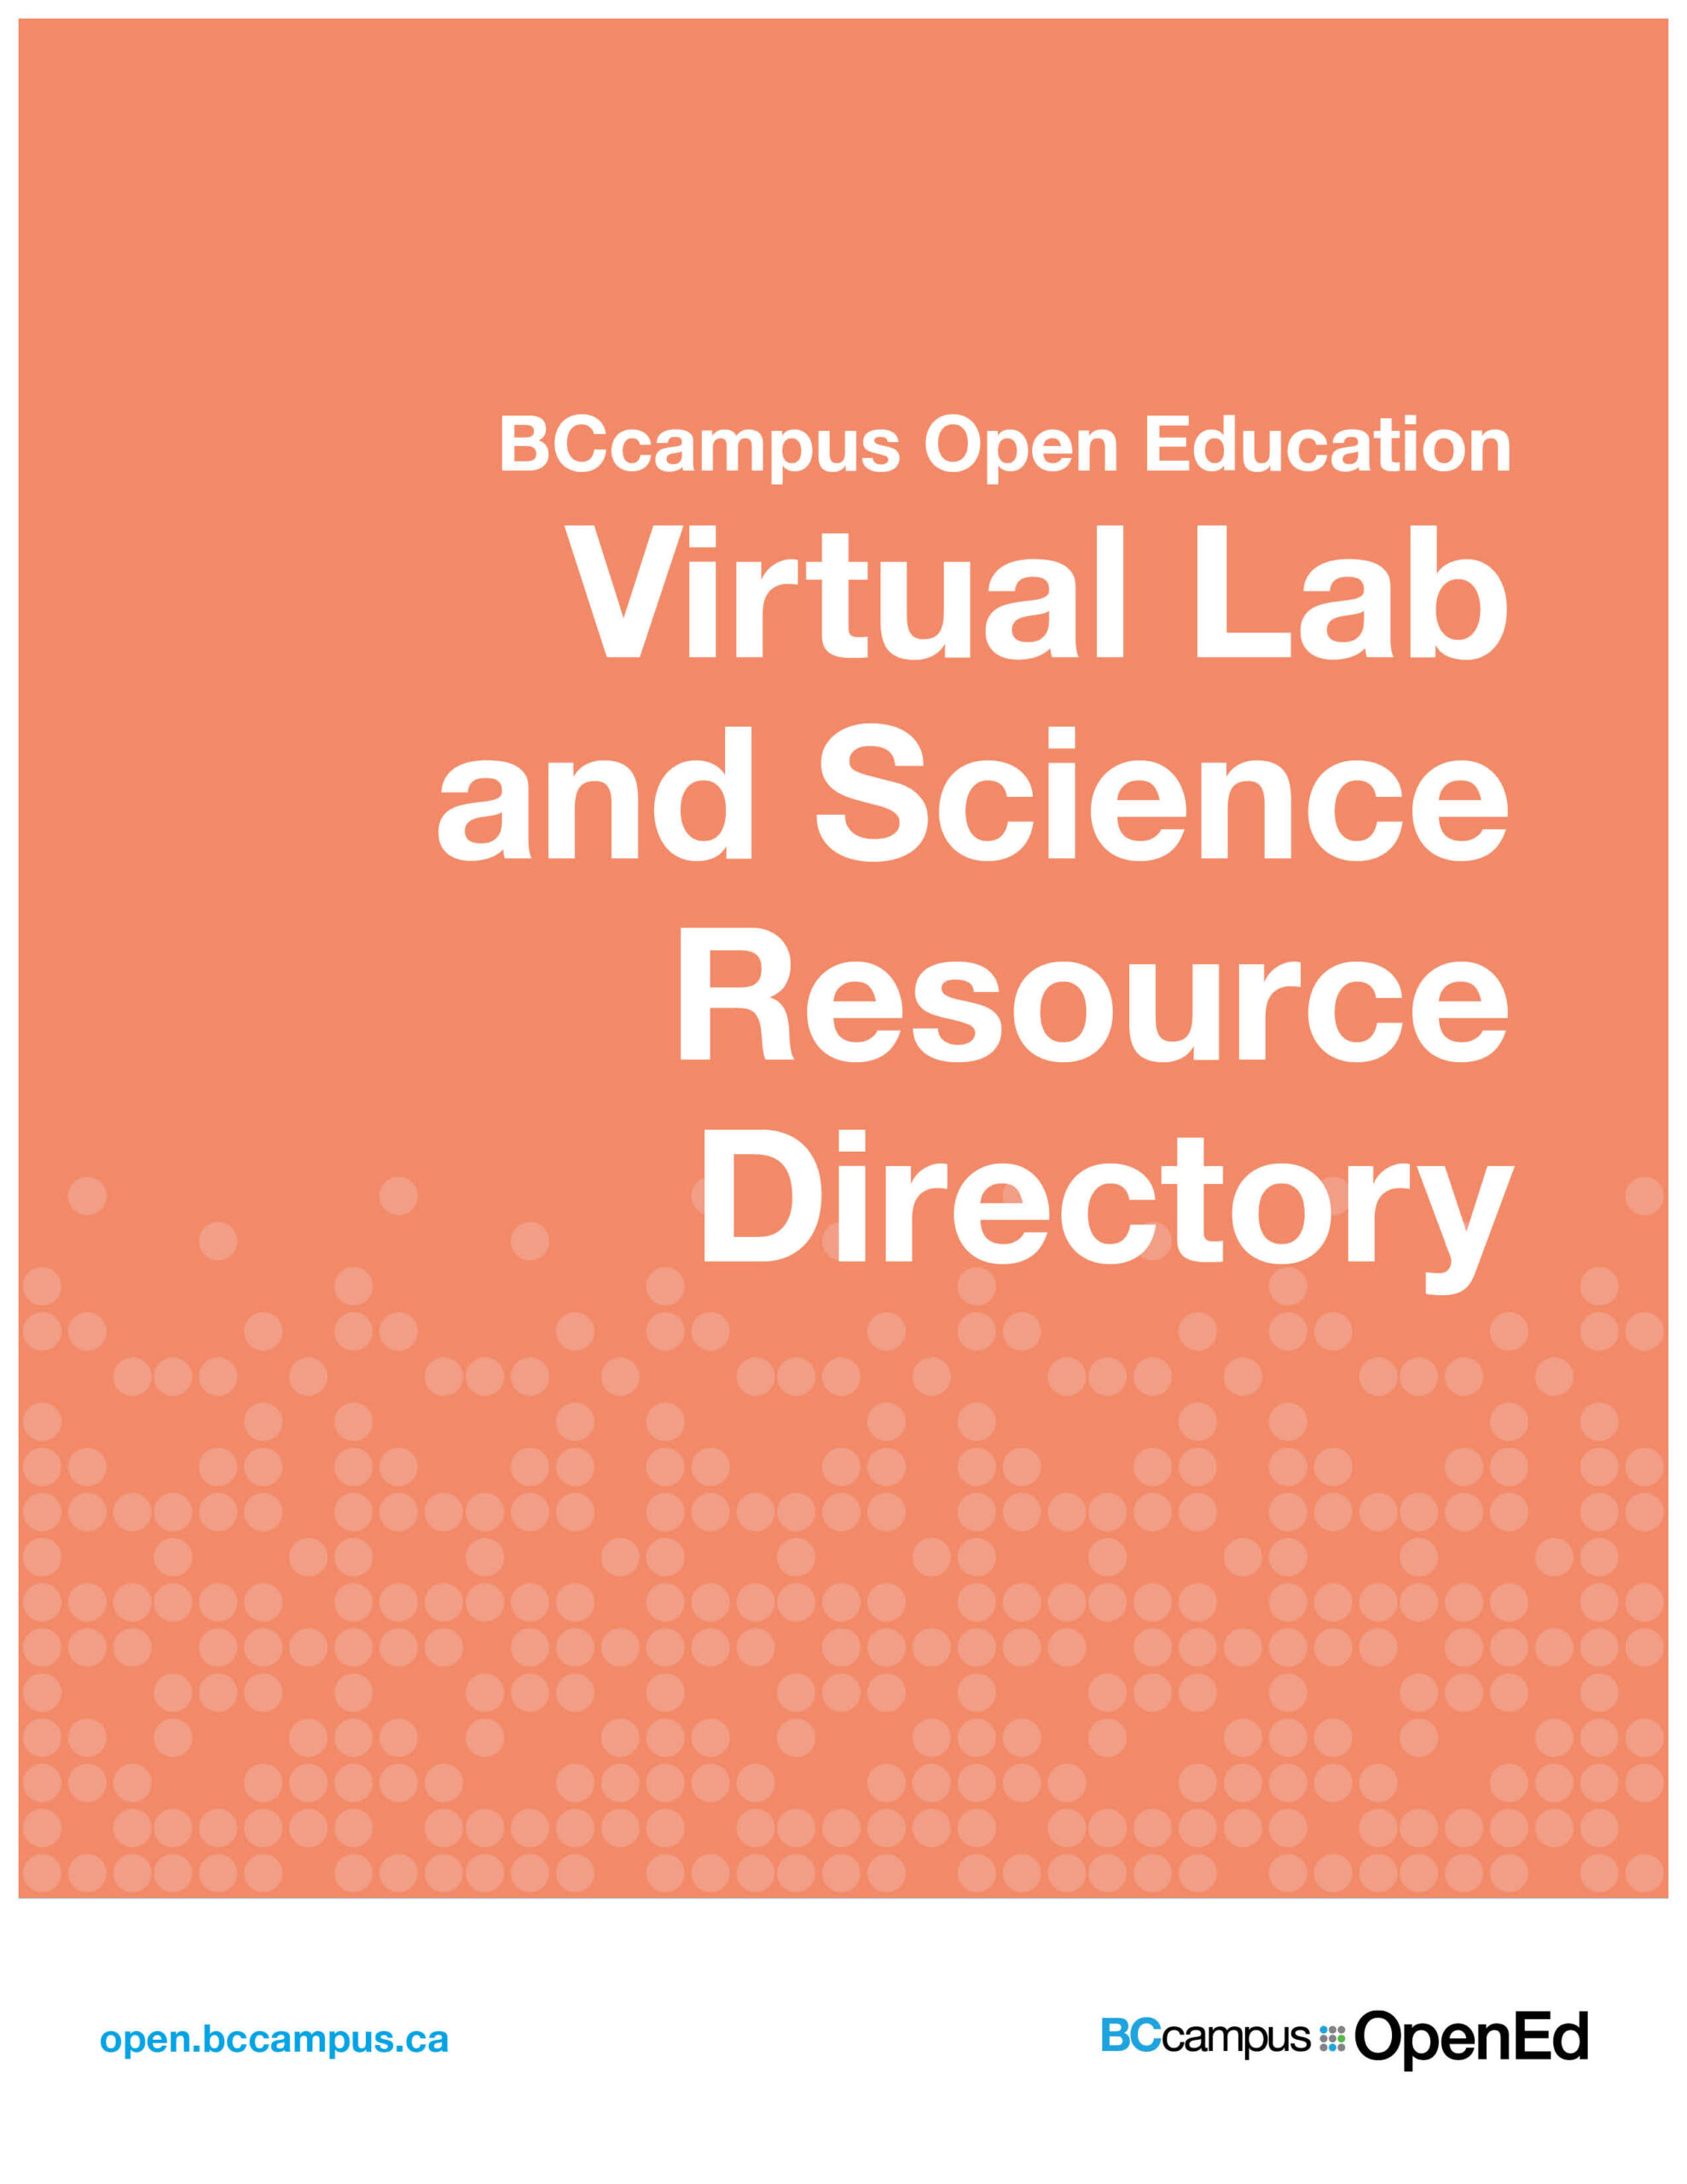 Image for the textbook titled Virtual Lab and Science Resource Directory